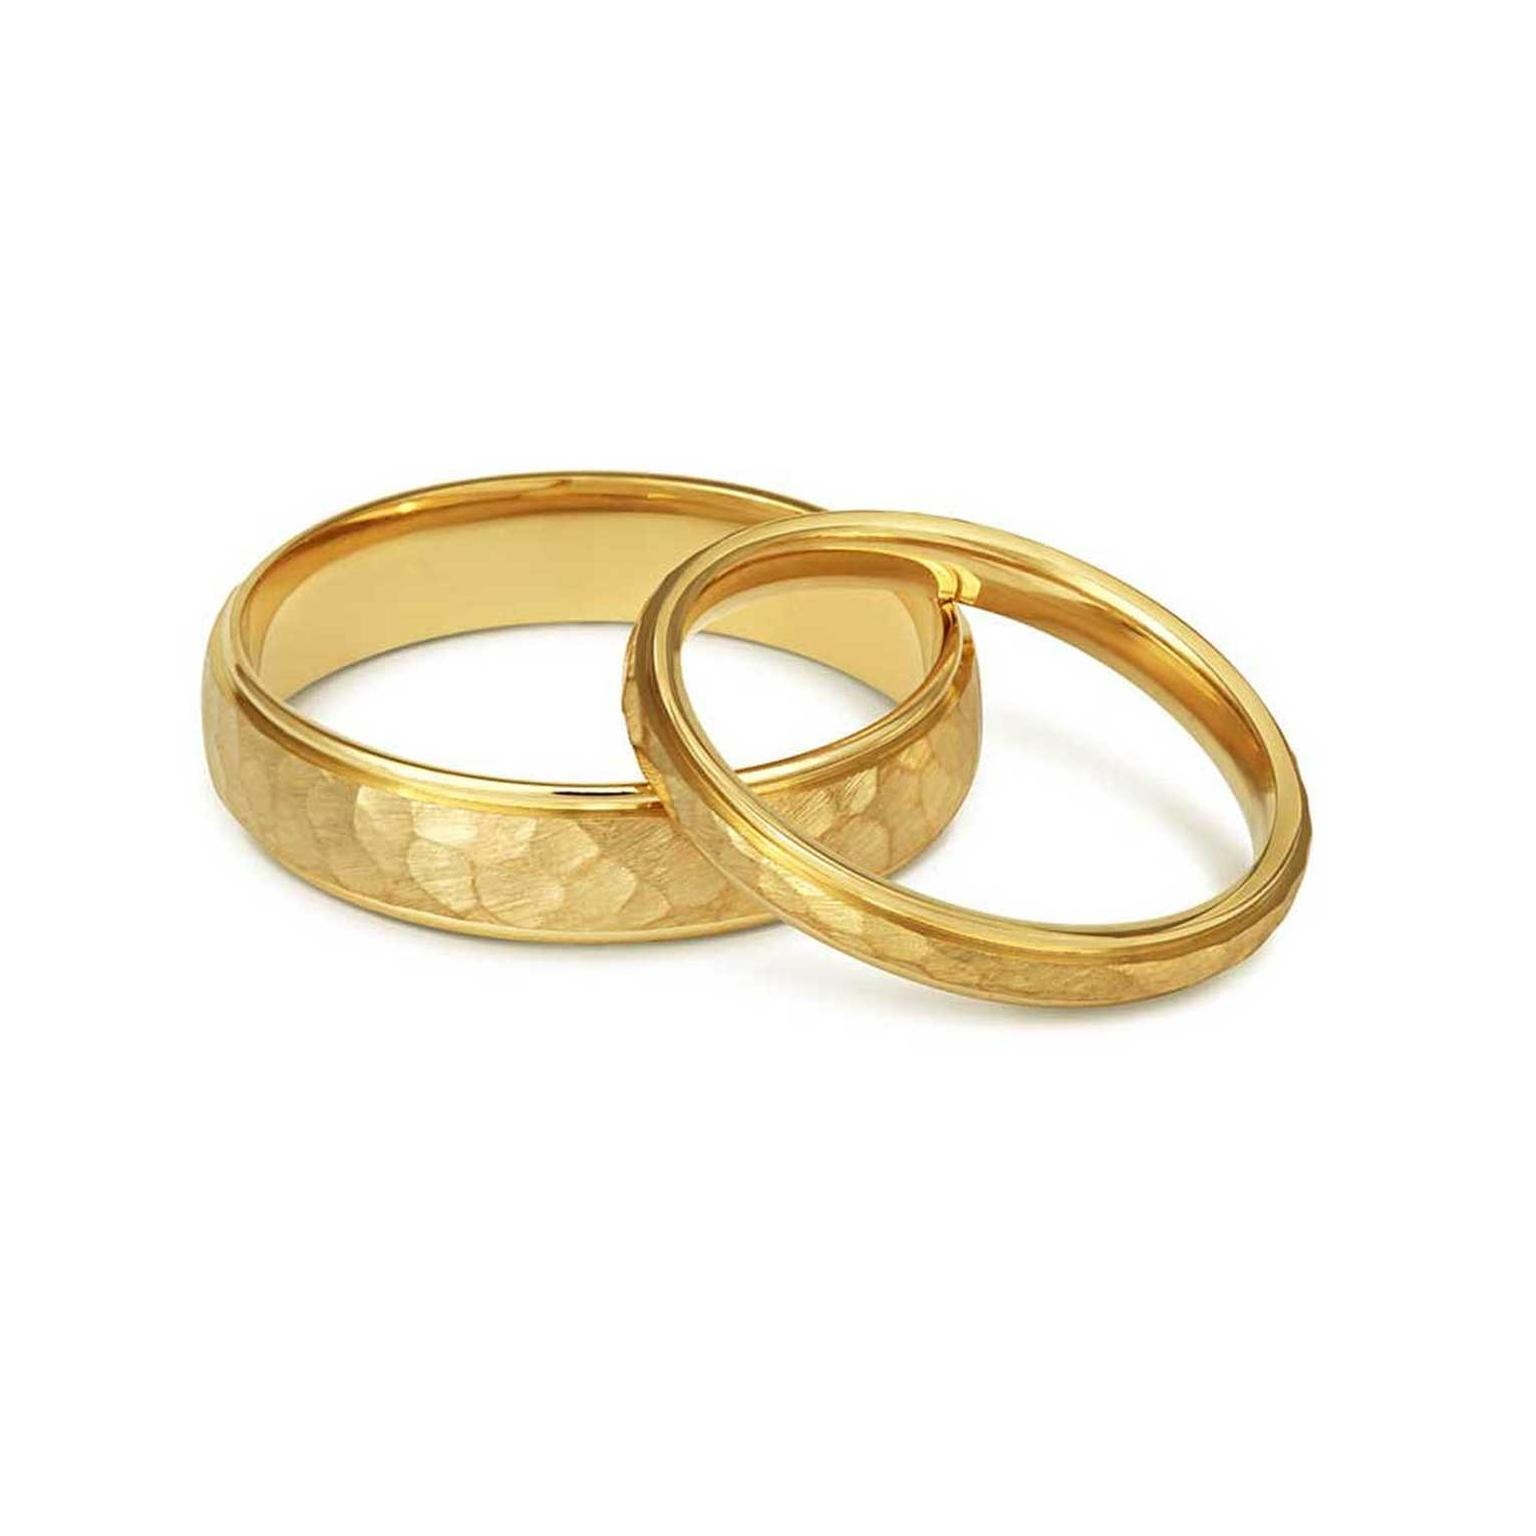 Cred Jewellery Fairtrade gold wedding rings